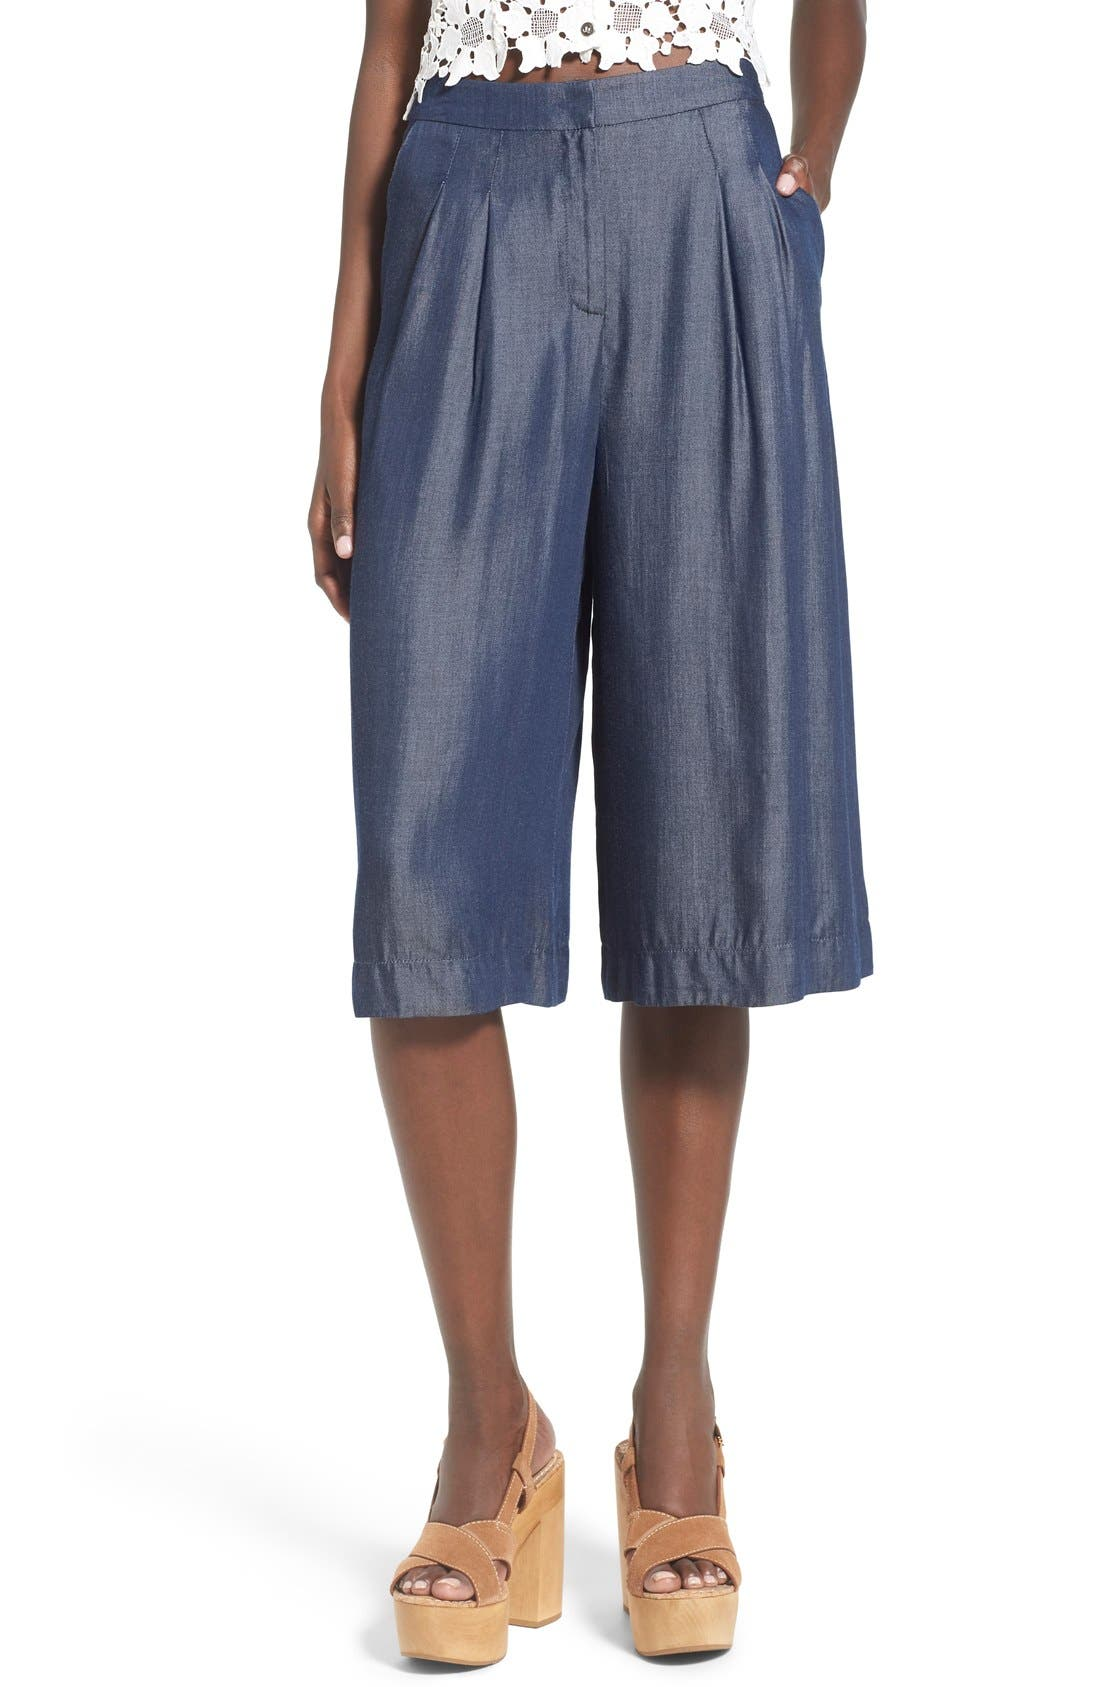 Alternate Image 1 Selected - ASTR 'Ashley' Chambray Culottes